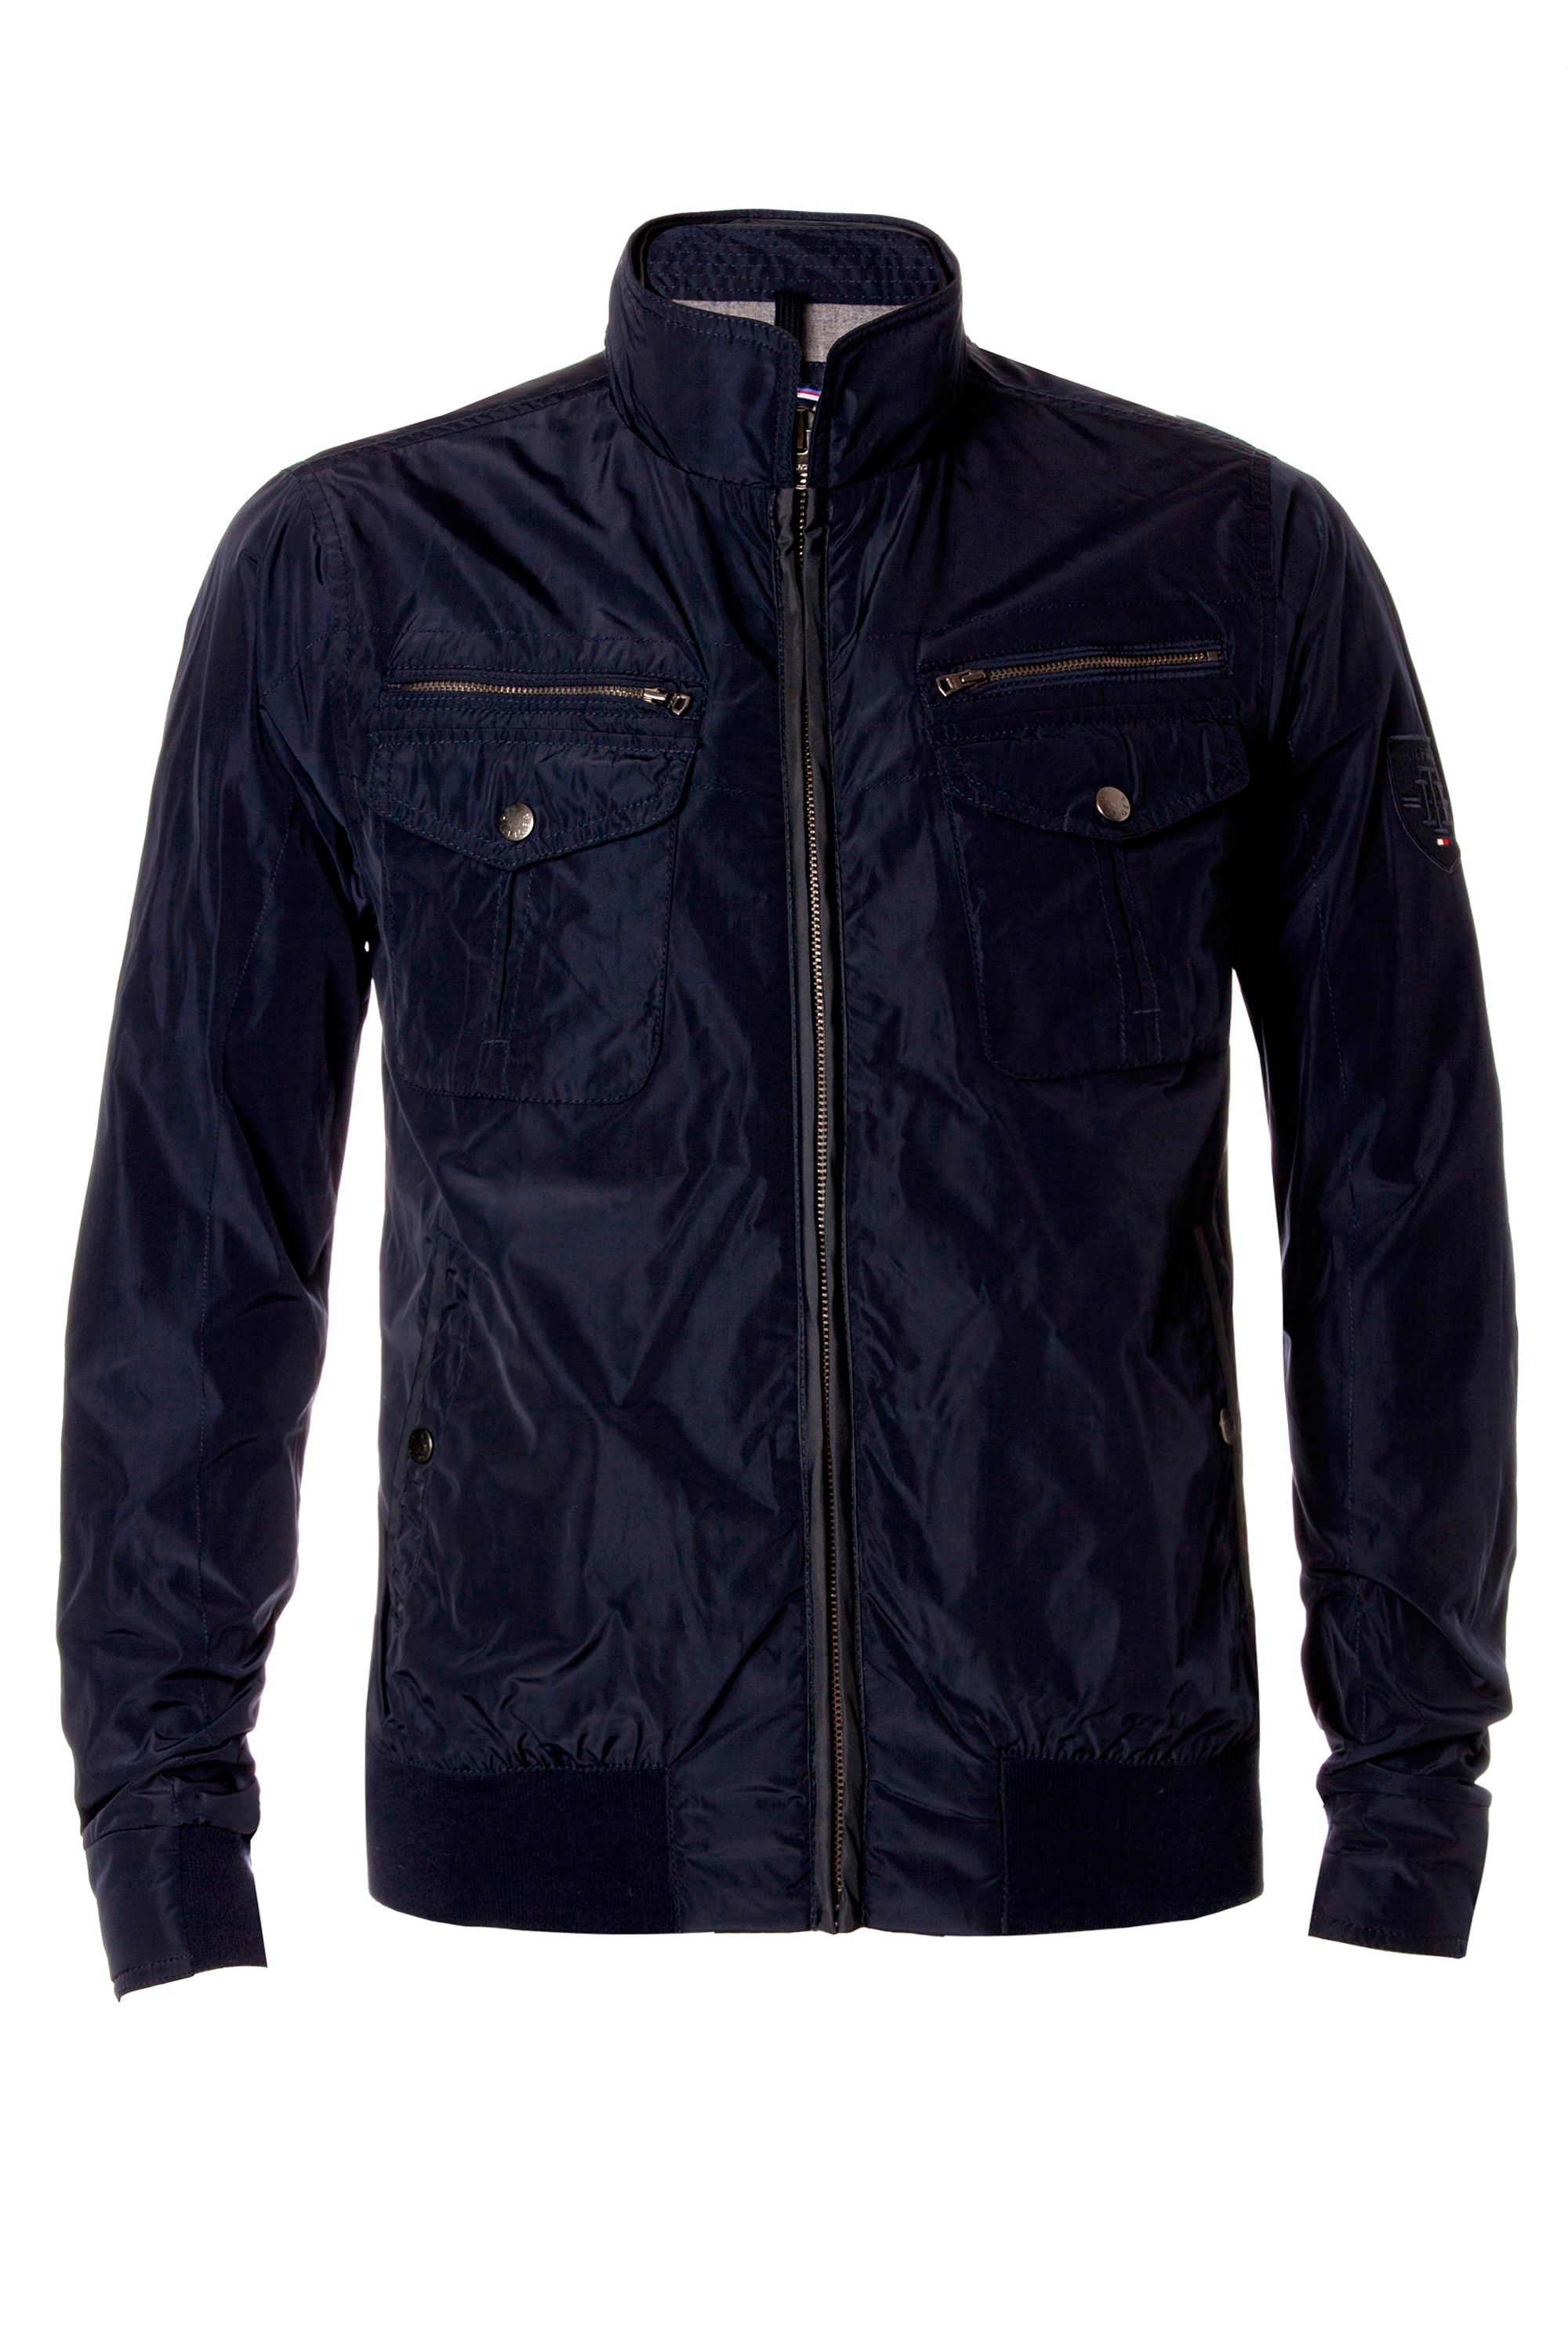 Cliffdale bomber jacket